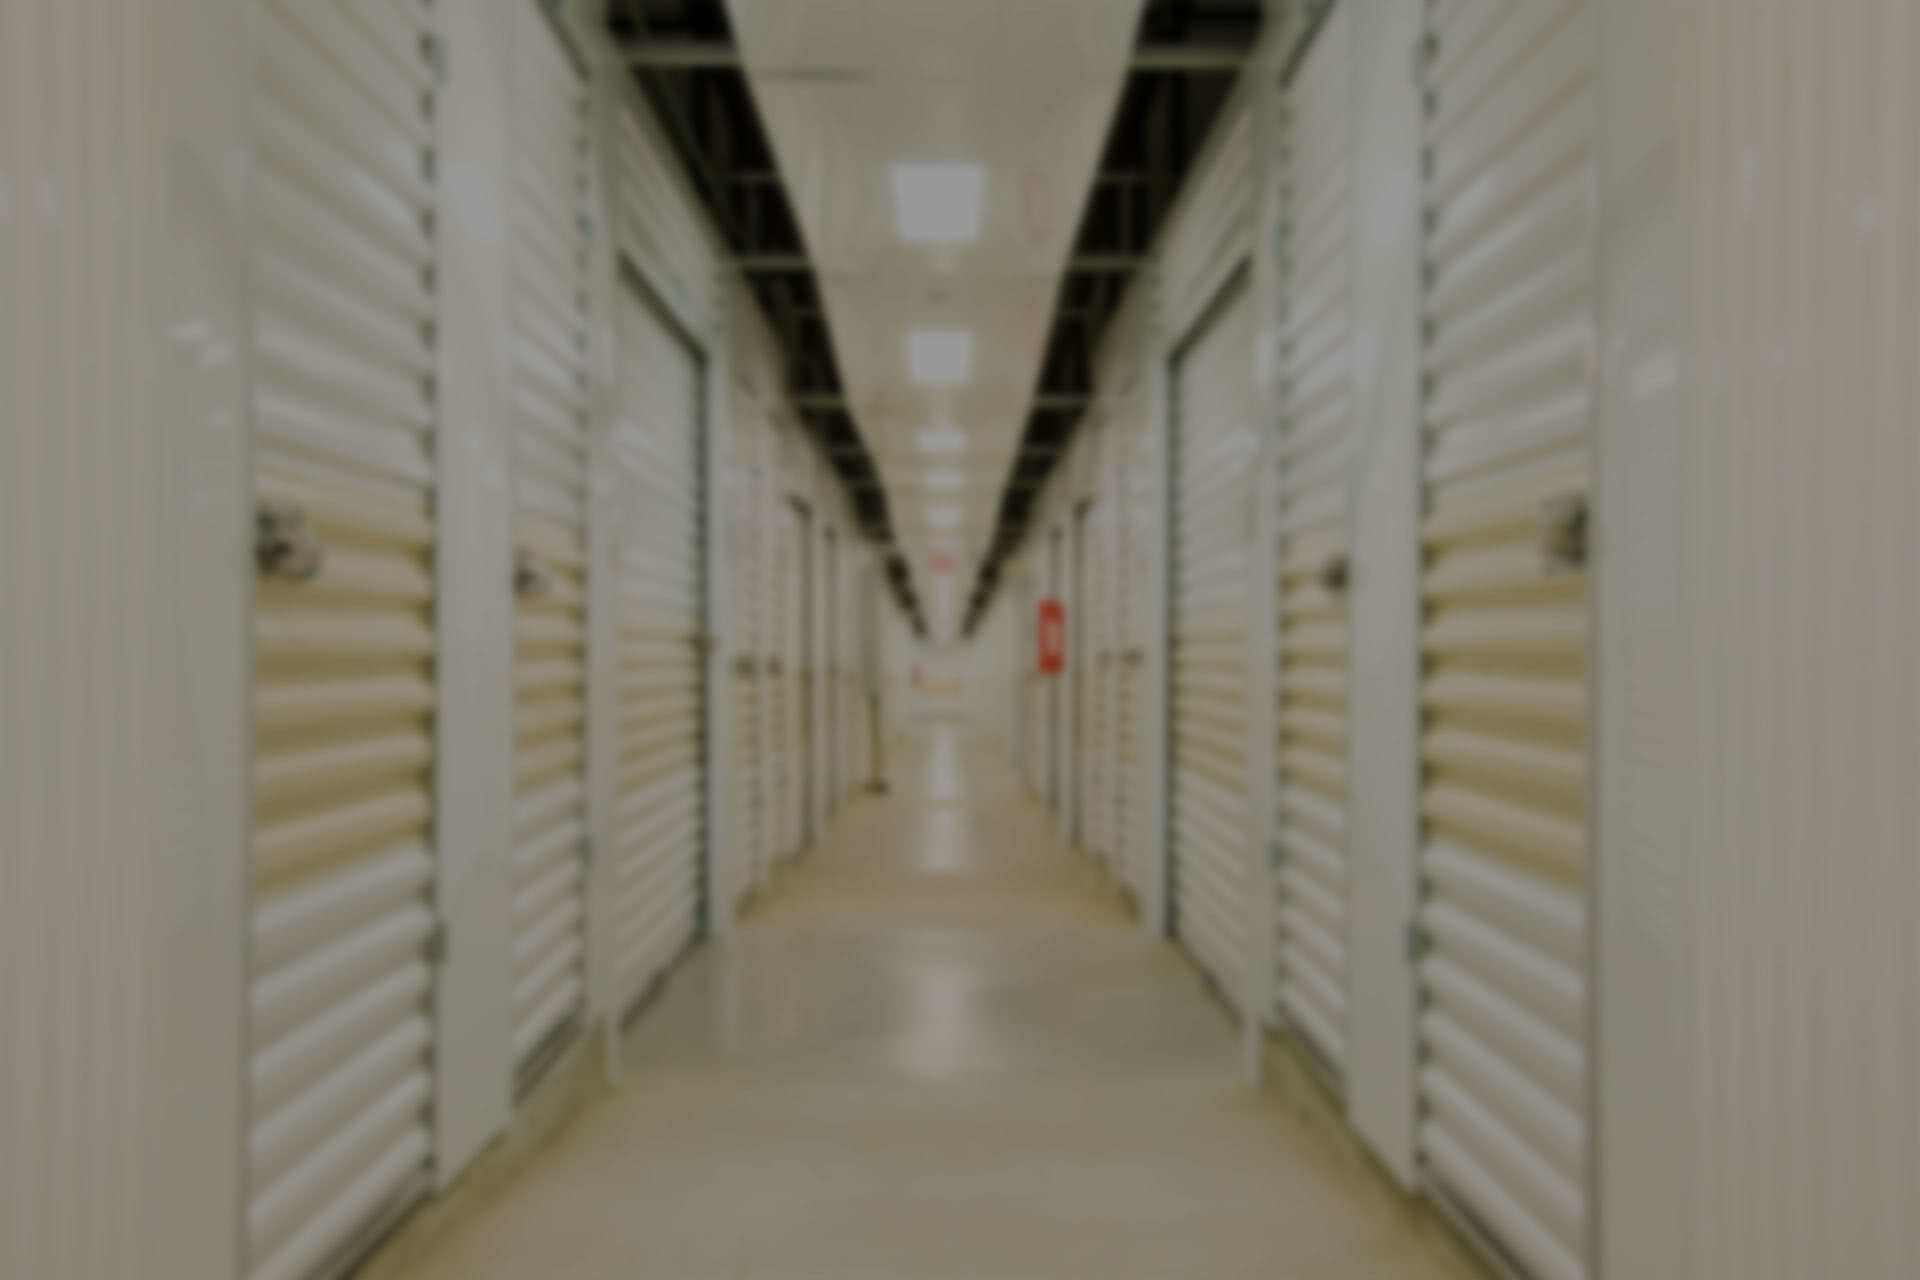 Rows of white storage lockers